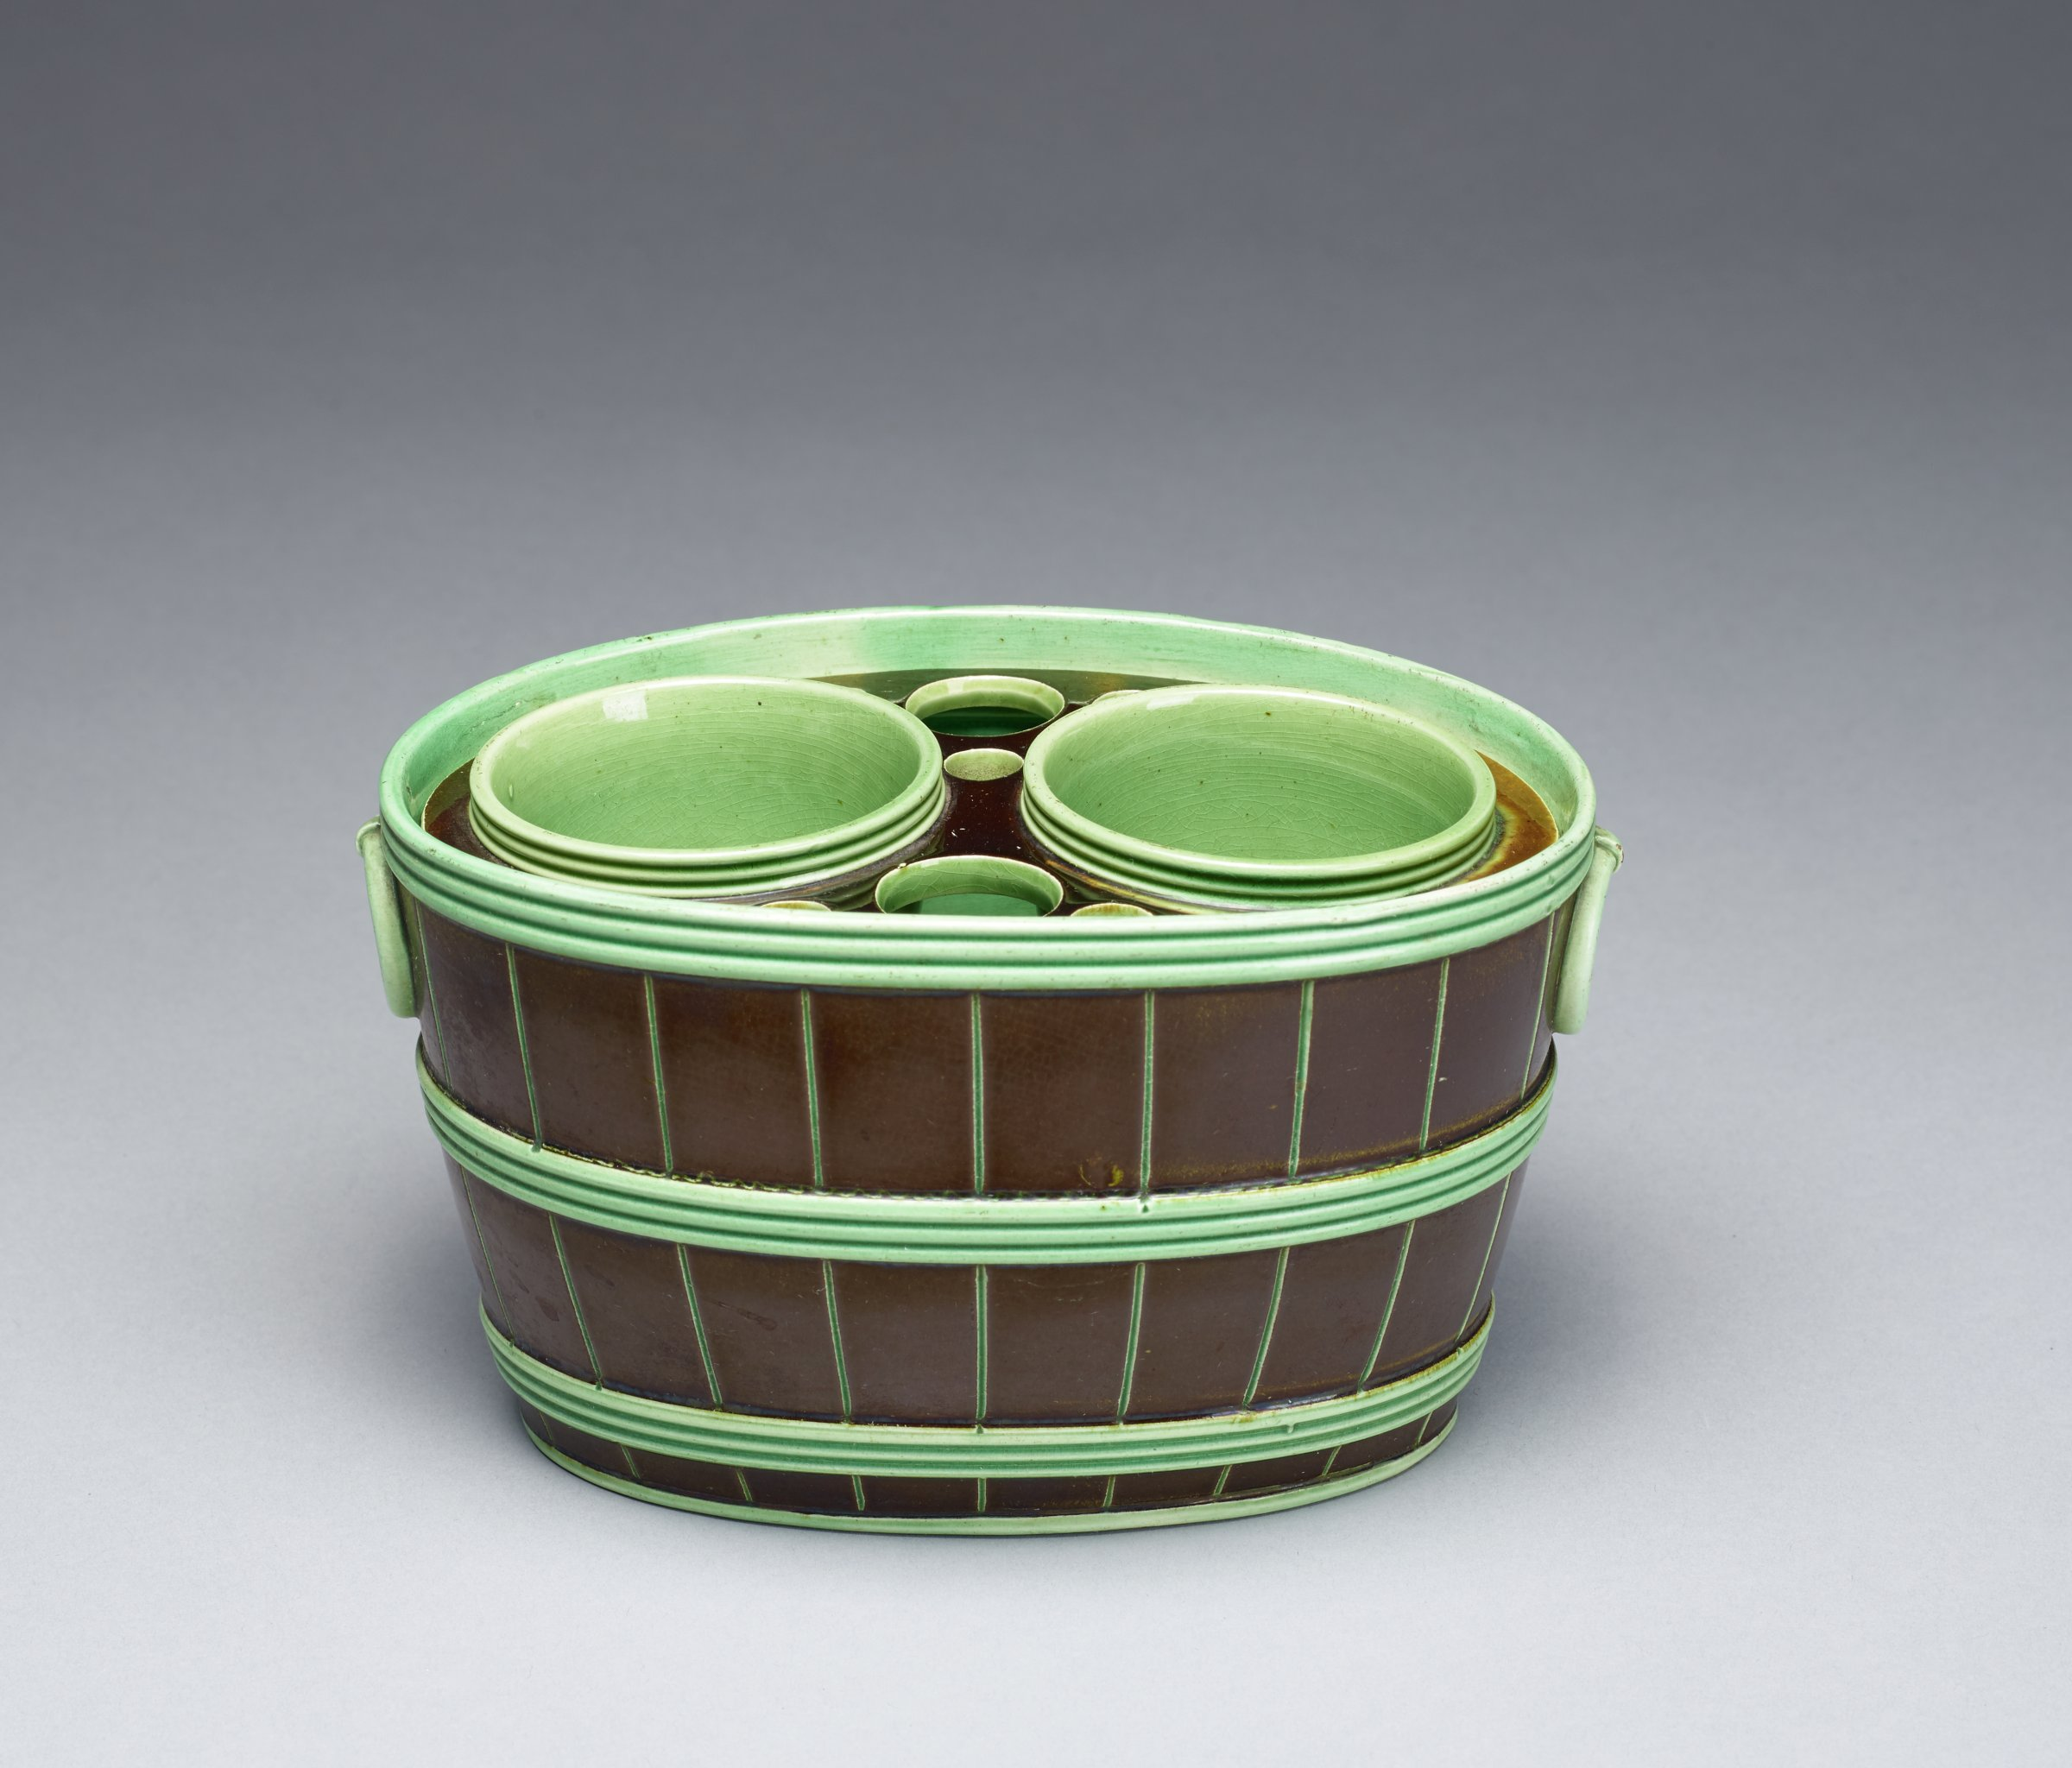 Bulb pot in the form of an oval barrel, the body glazed black with bands of green, the removable fitment with two spouts to accommodate bulbs and with two larger and five smaller air holes in the fitment, the interior and the underside are glazed green, the topside of the fitment is covered with a tortoiseshell glaze.